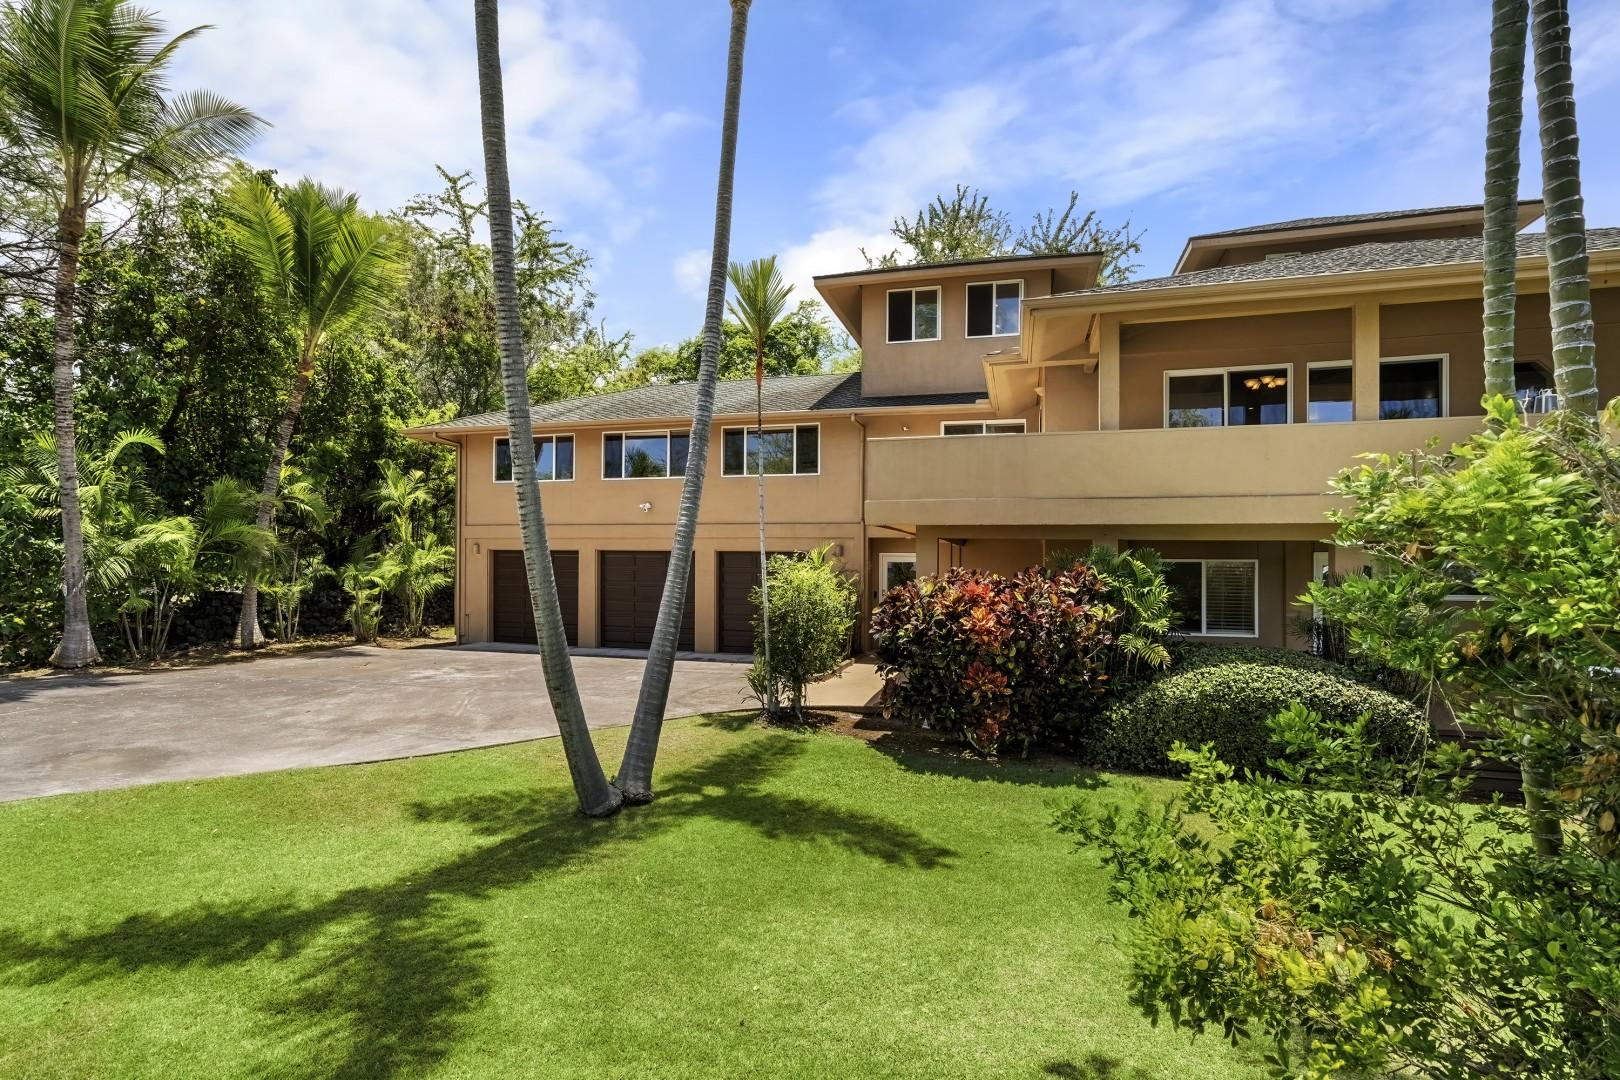 Lush and manicured front lawn